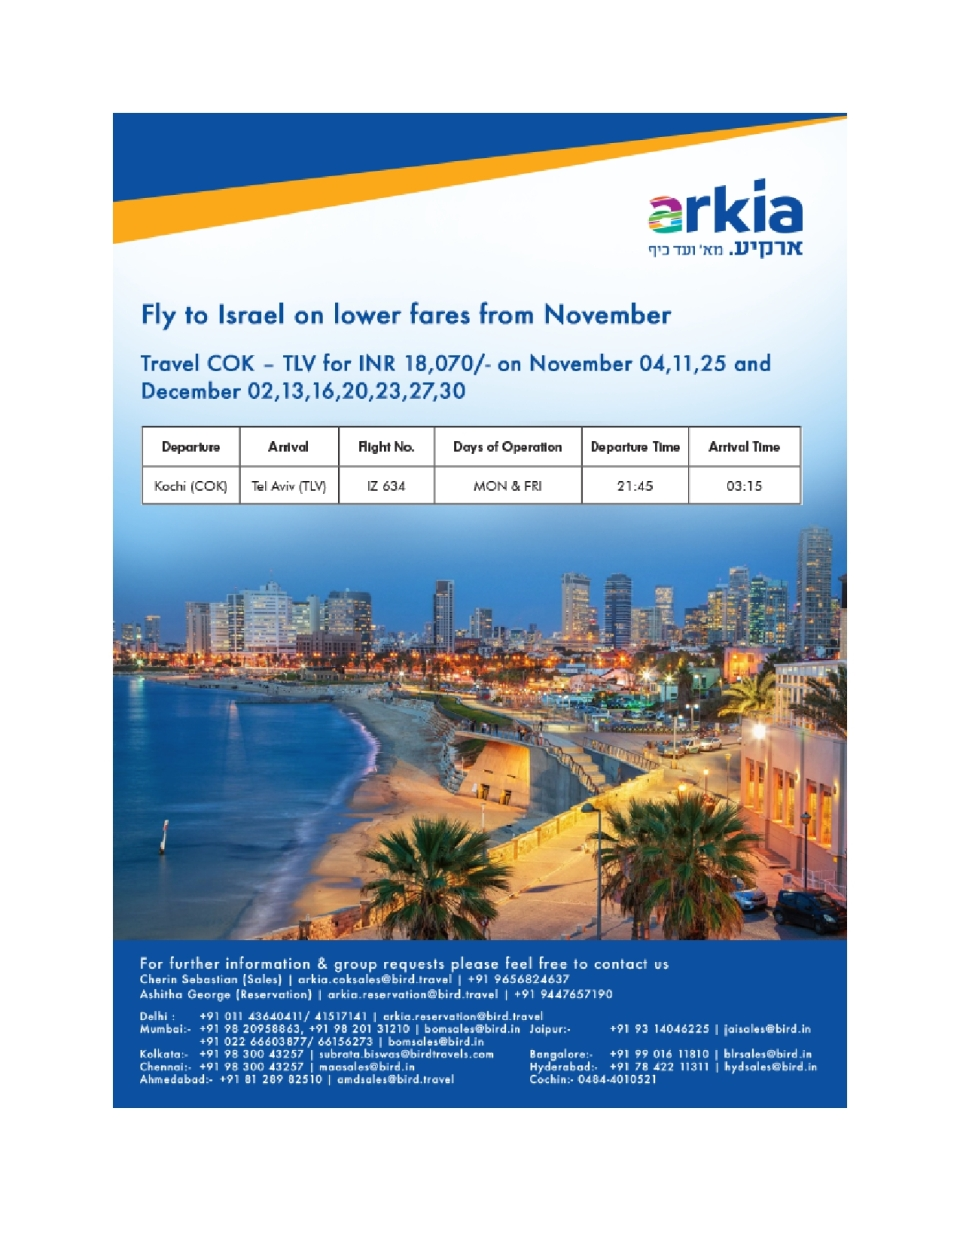 FLY NON-STOP WITH LOWER FARES TO ISRAEL.jpg